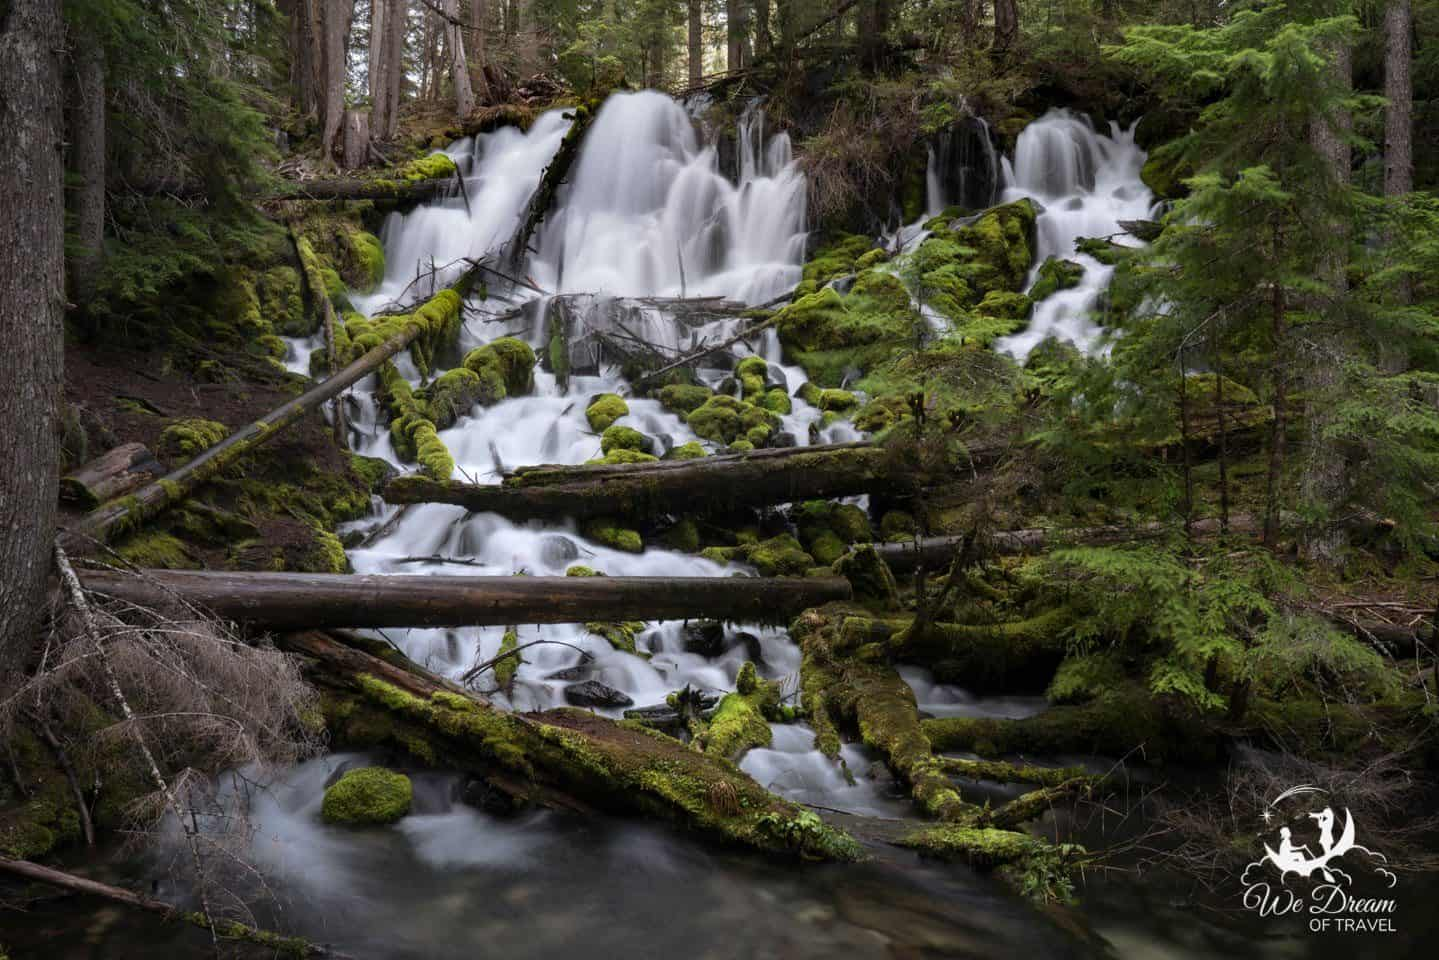 Umpqua Falls is a great place to visit in ORegon for waterfall chasers